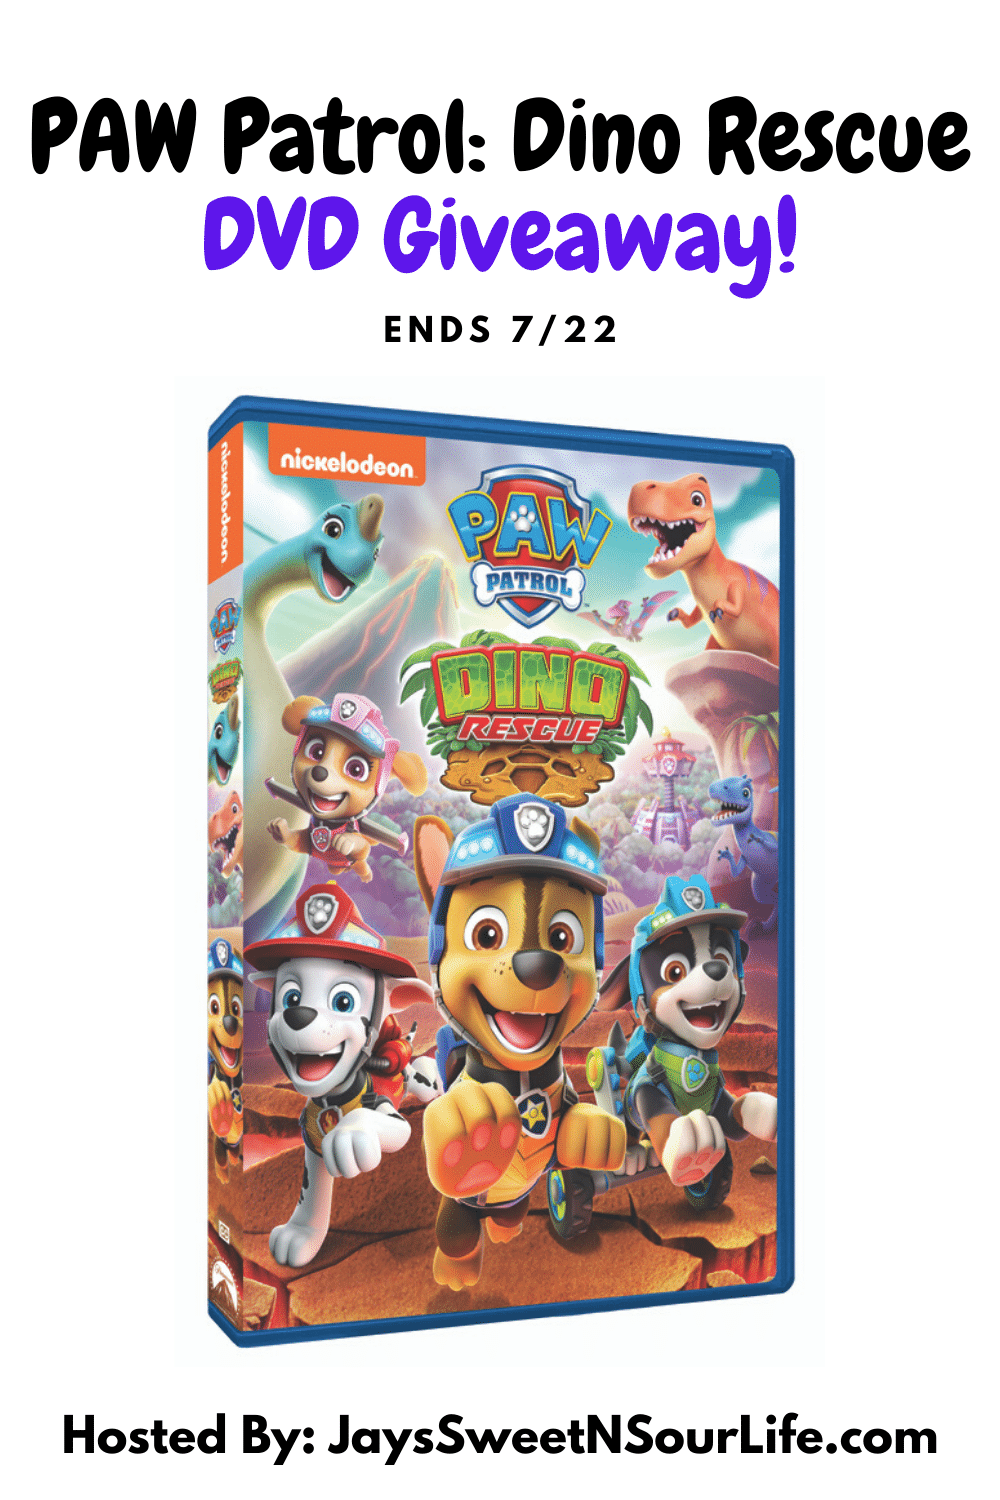 PAW Patrol Dino Rescue DVD Giveaway! ROAR into a prehistoric land with the PAW Patrol in these six dino-mite tales, including two double-length missions. Join the pups as they roll into Dino Wilds to keep their new friends safe from an erupting volcano and a scheming dino egg thief. Then, the team gears up for a robotic dinosaur adventure. Enter to win your very own PAW Patrol Dino Rescue DVD! Giveaway Ends 7/22